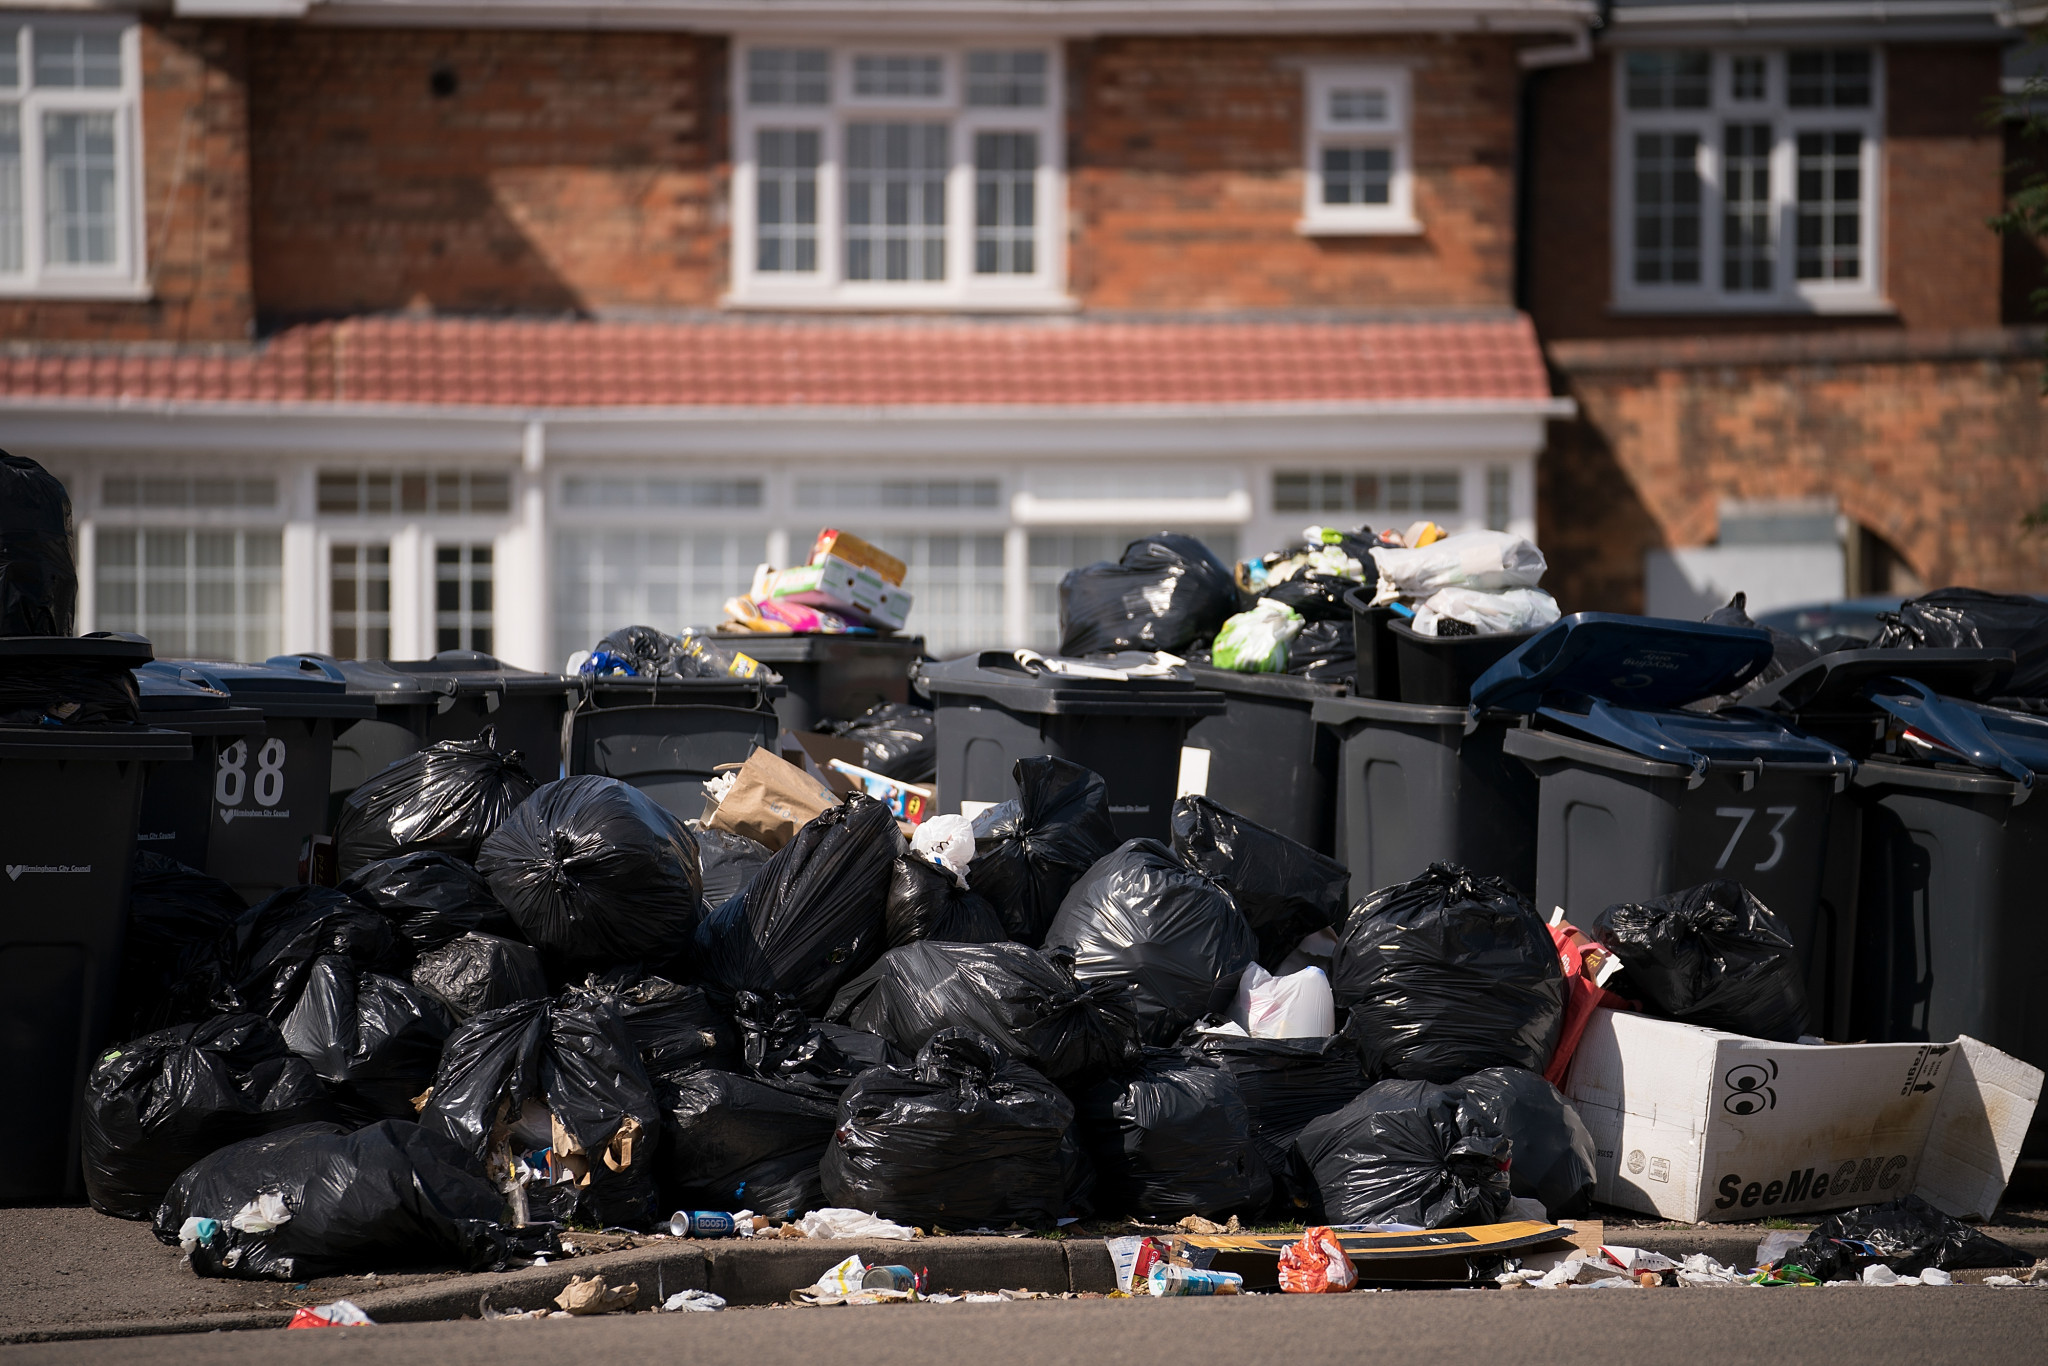 Rubbish has piled up in the streets of Birmingham because of a strike by refuse workers after the City Council cut services by £5 million as part of budget cuts ©Getty Images